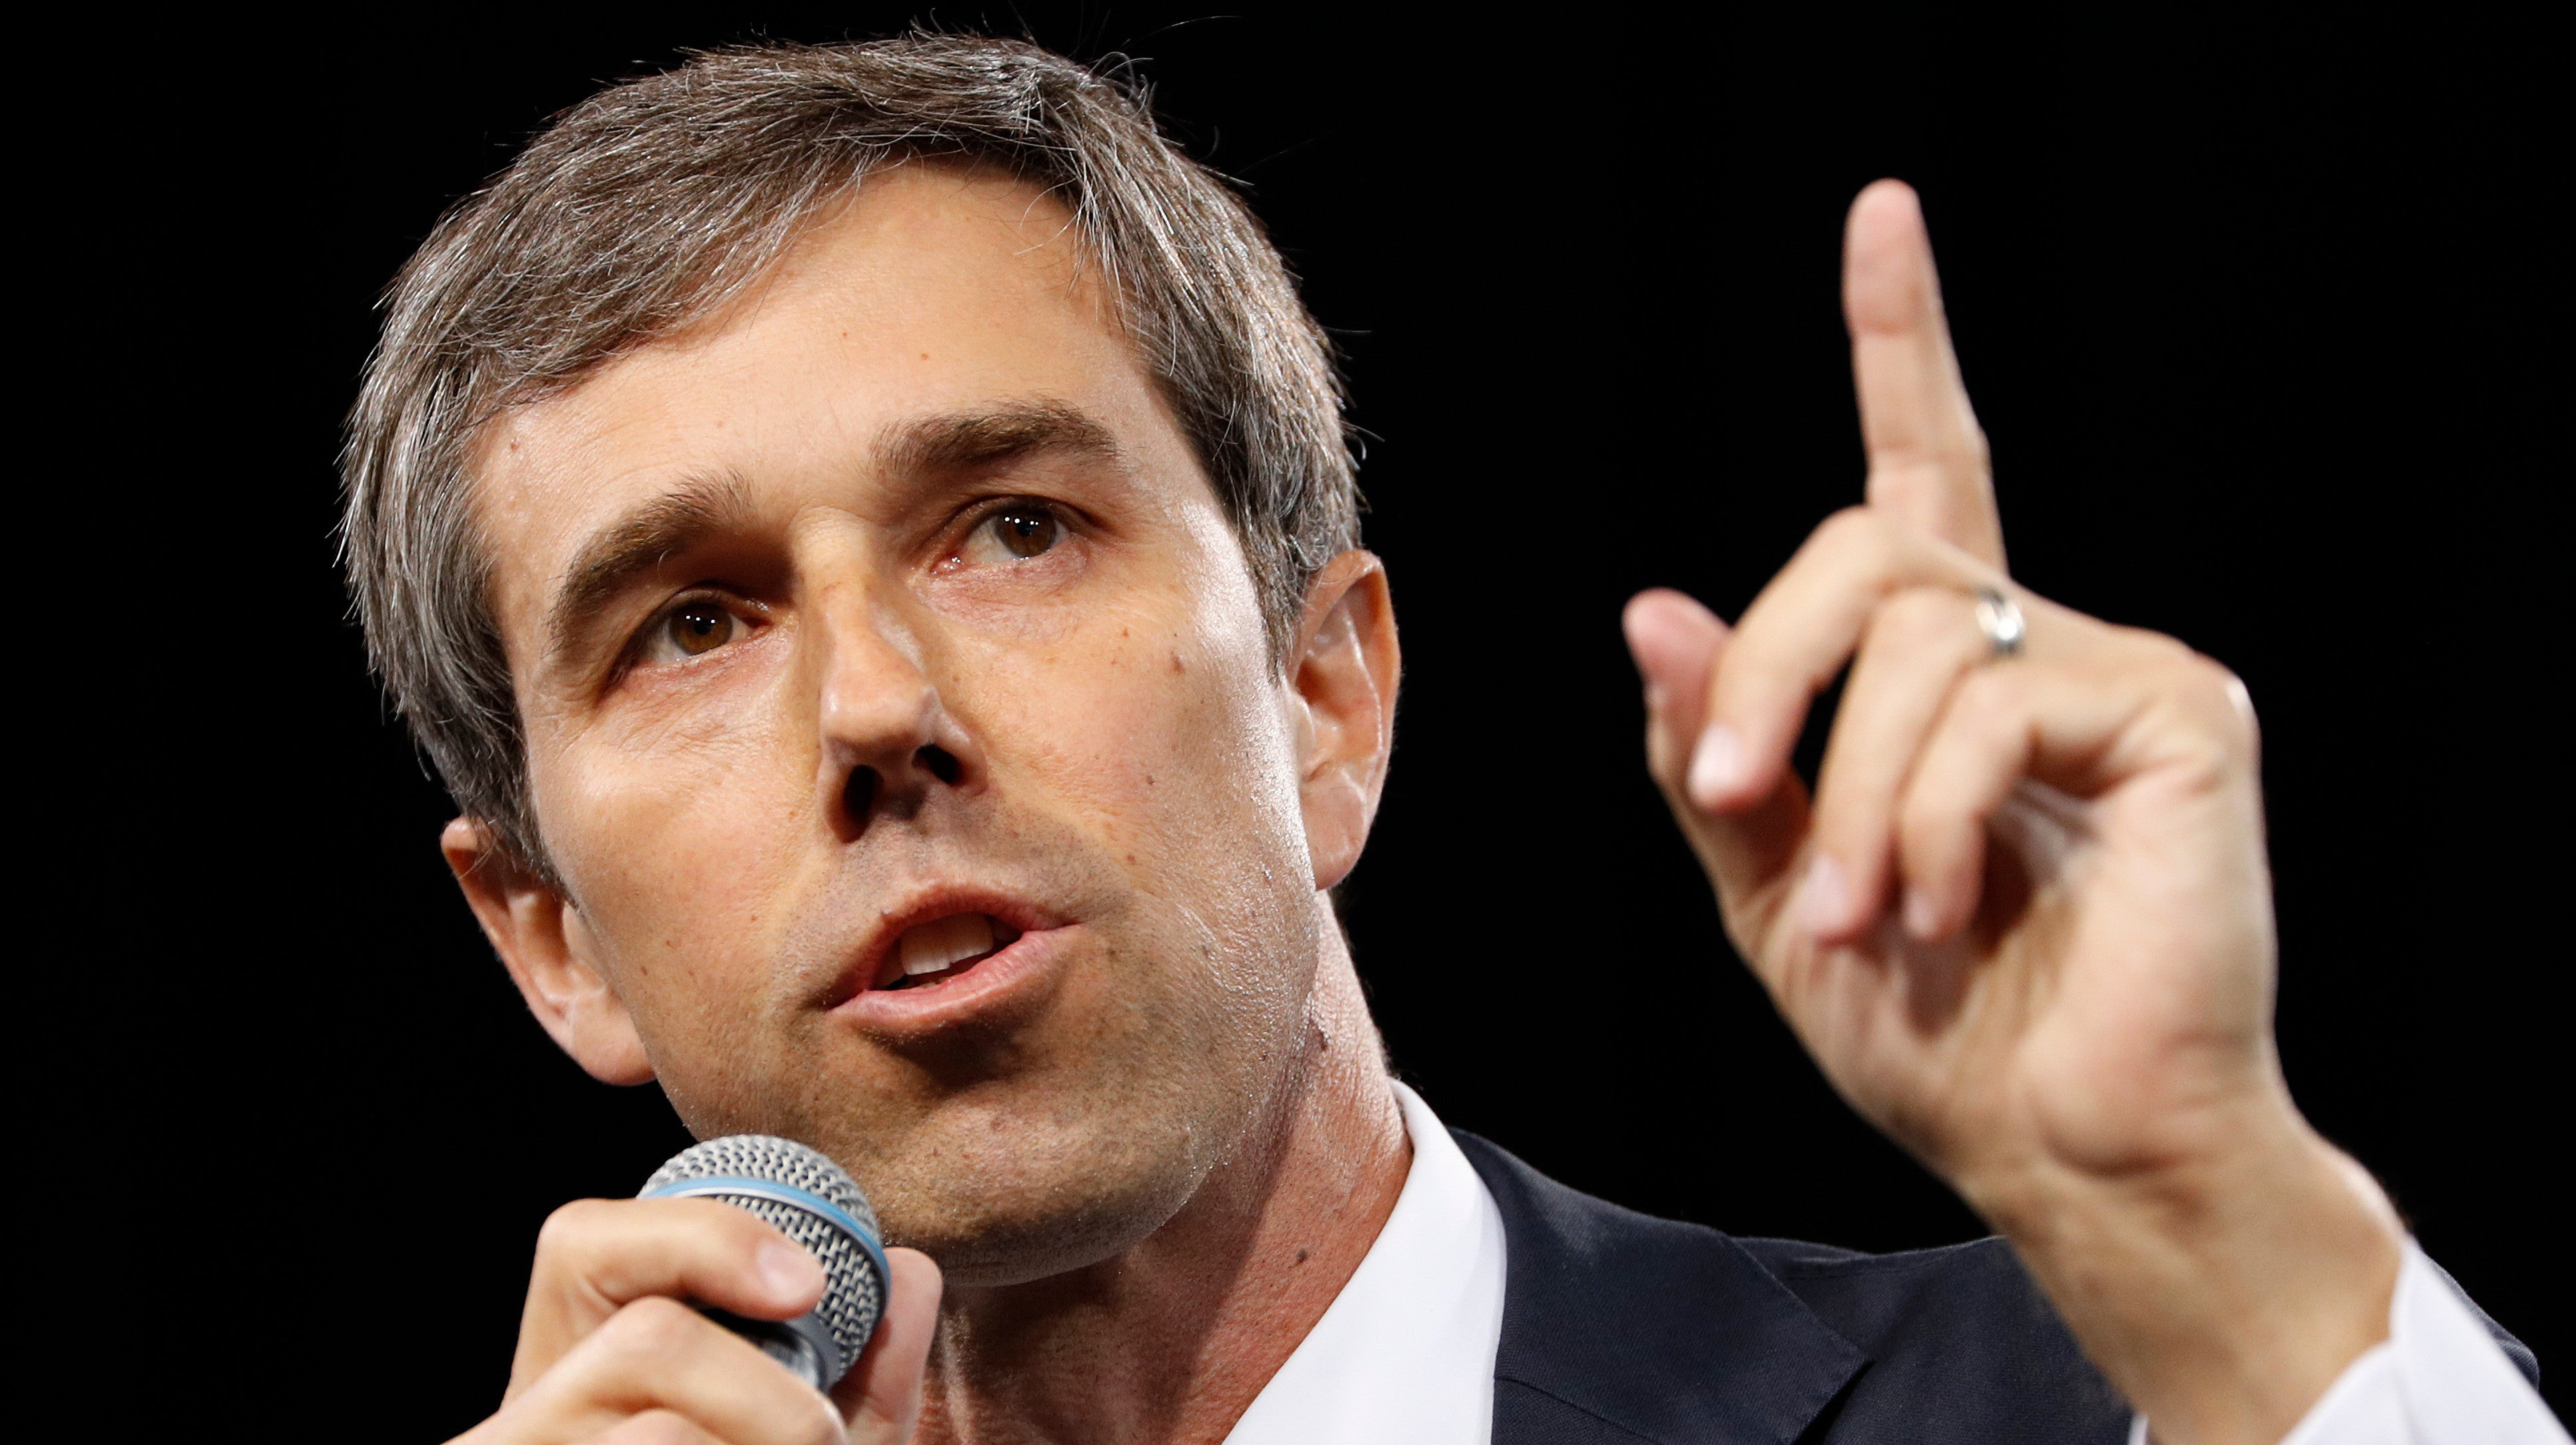 Beto O'Rourke's First Policy Proposal Is A $5 Trillion Plan To Tackle Climate Change